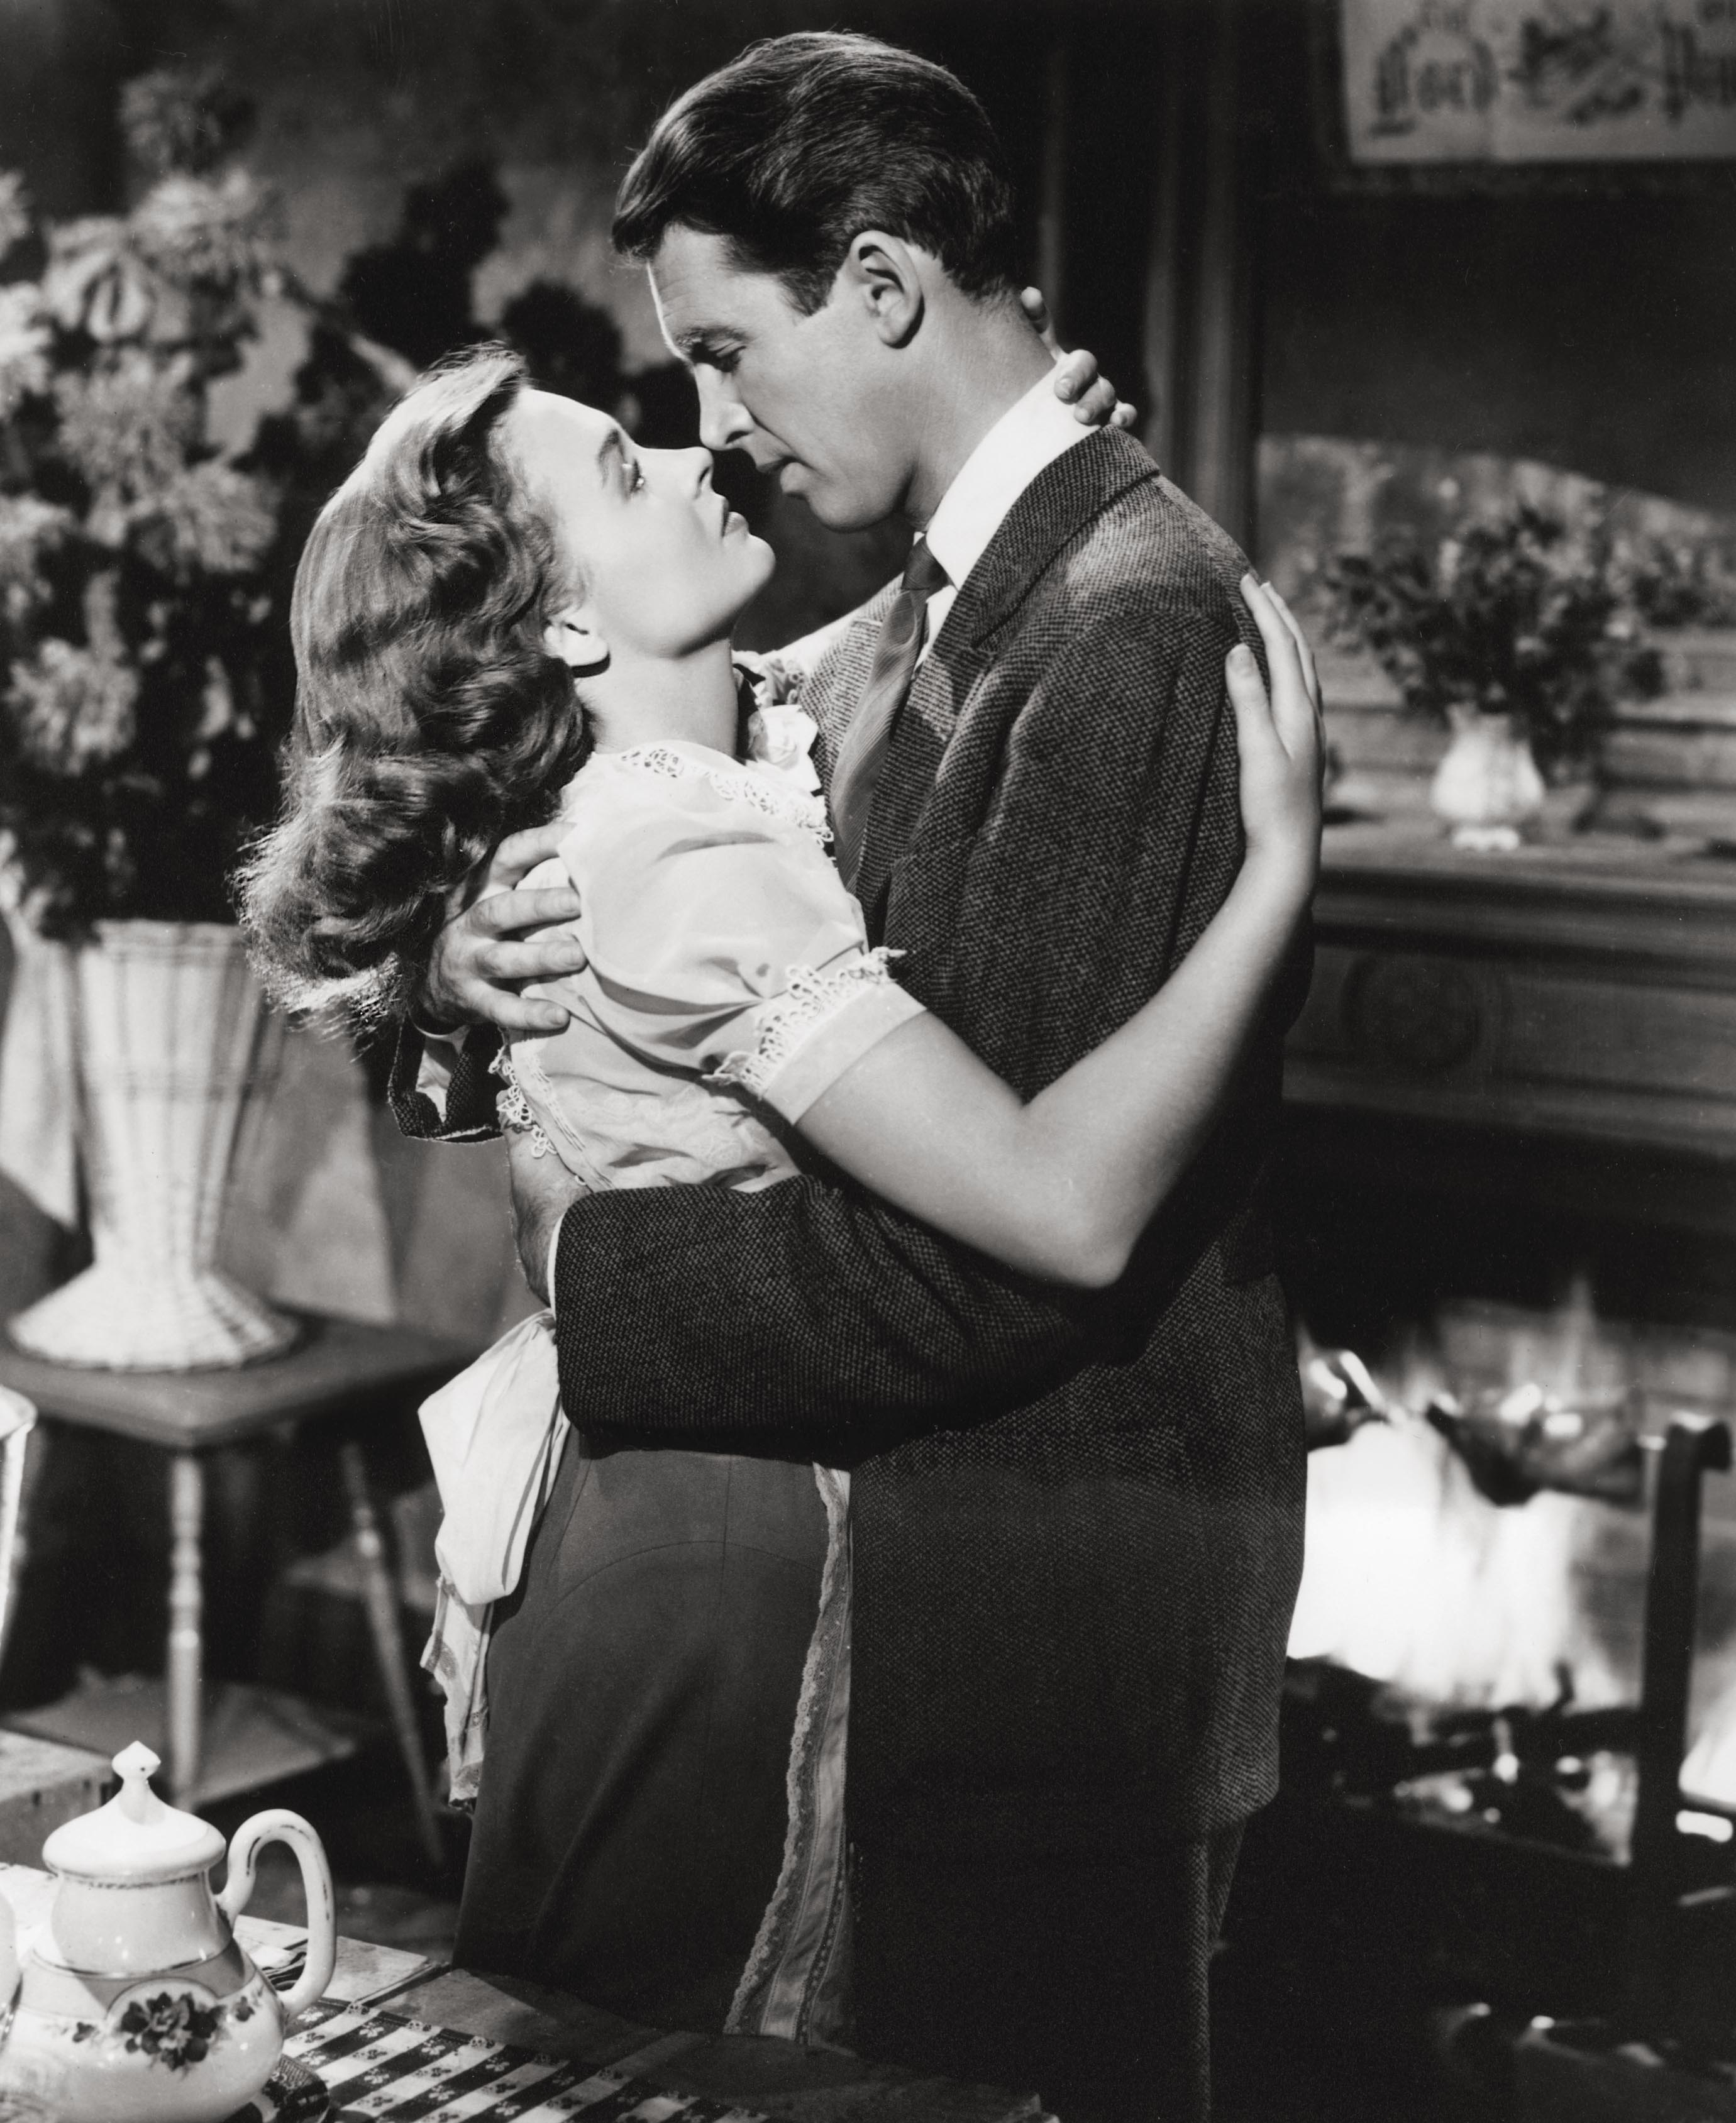 It's a Wonderful Life: Donna Reed as Mary Hatch with her hair styled into loose, vintage curls, being held by George Bailey on set